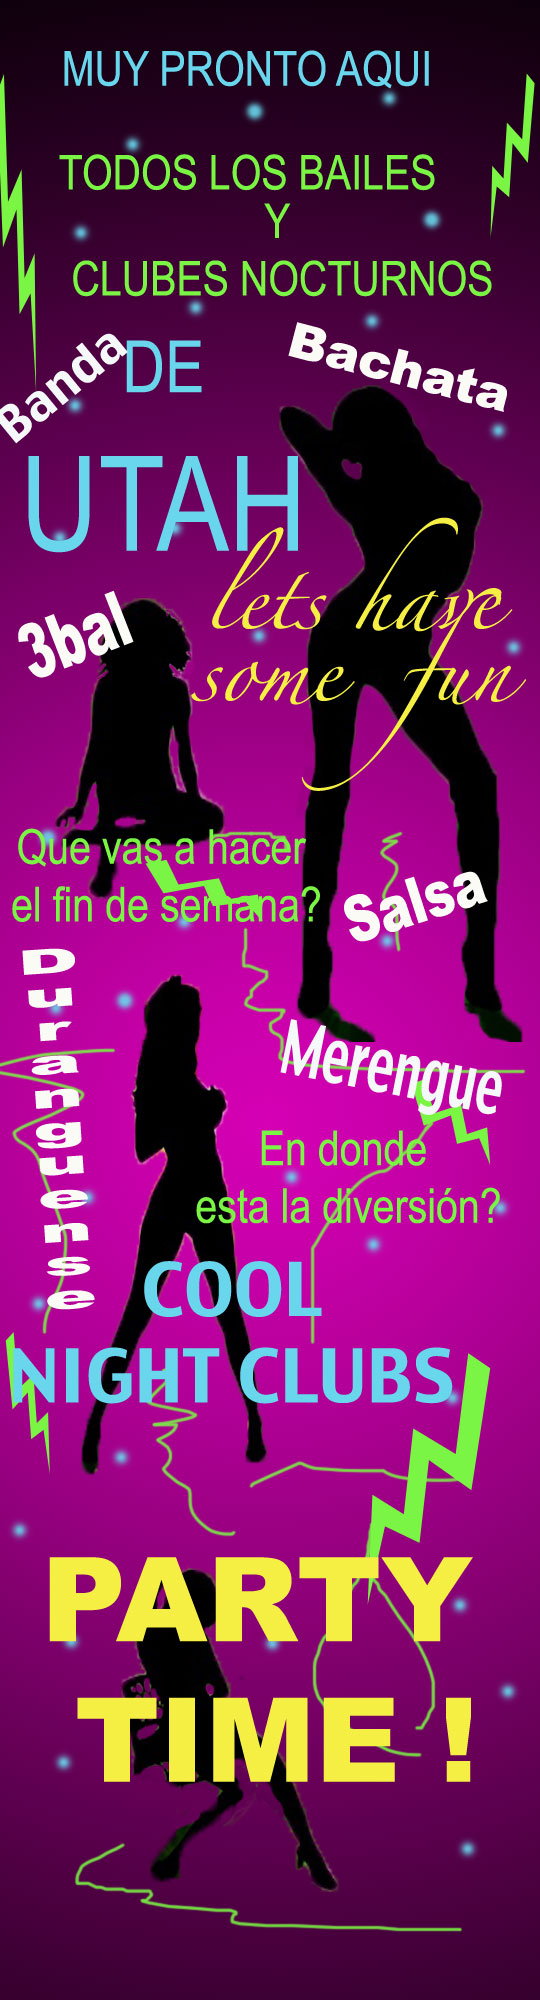 Bailes y Clubes